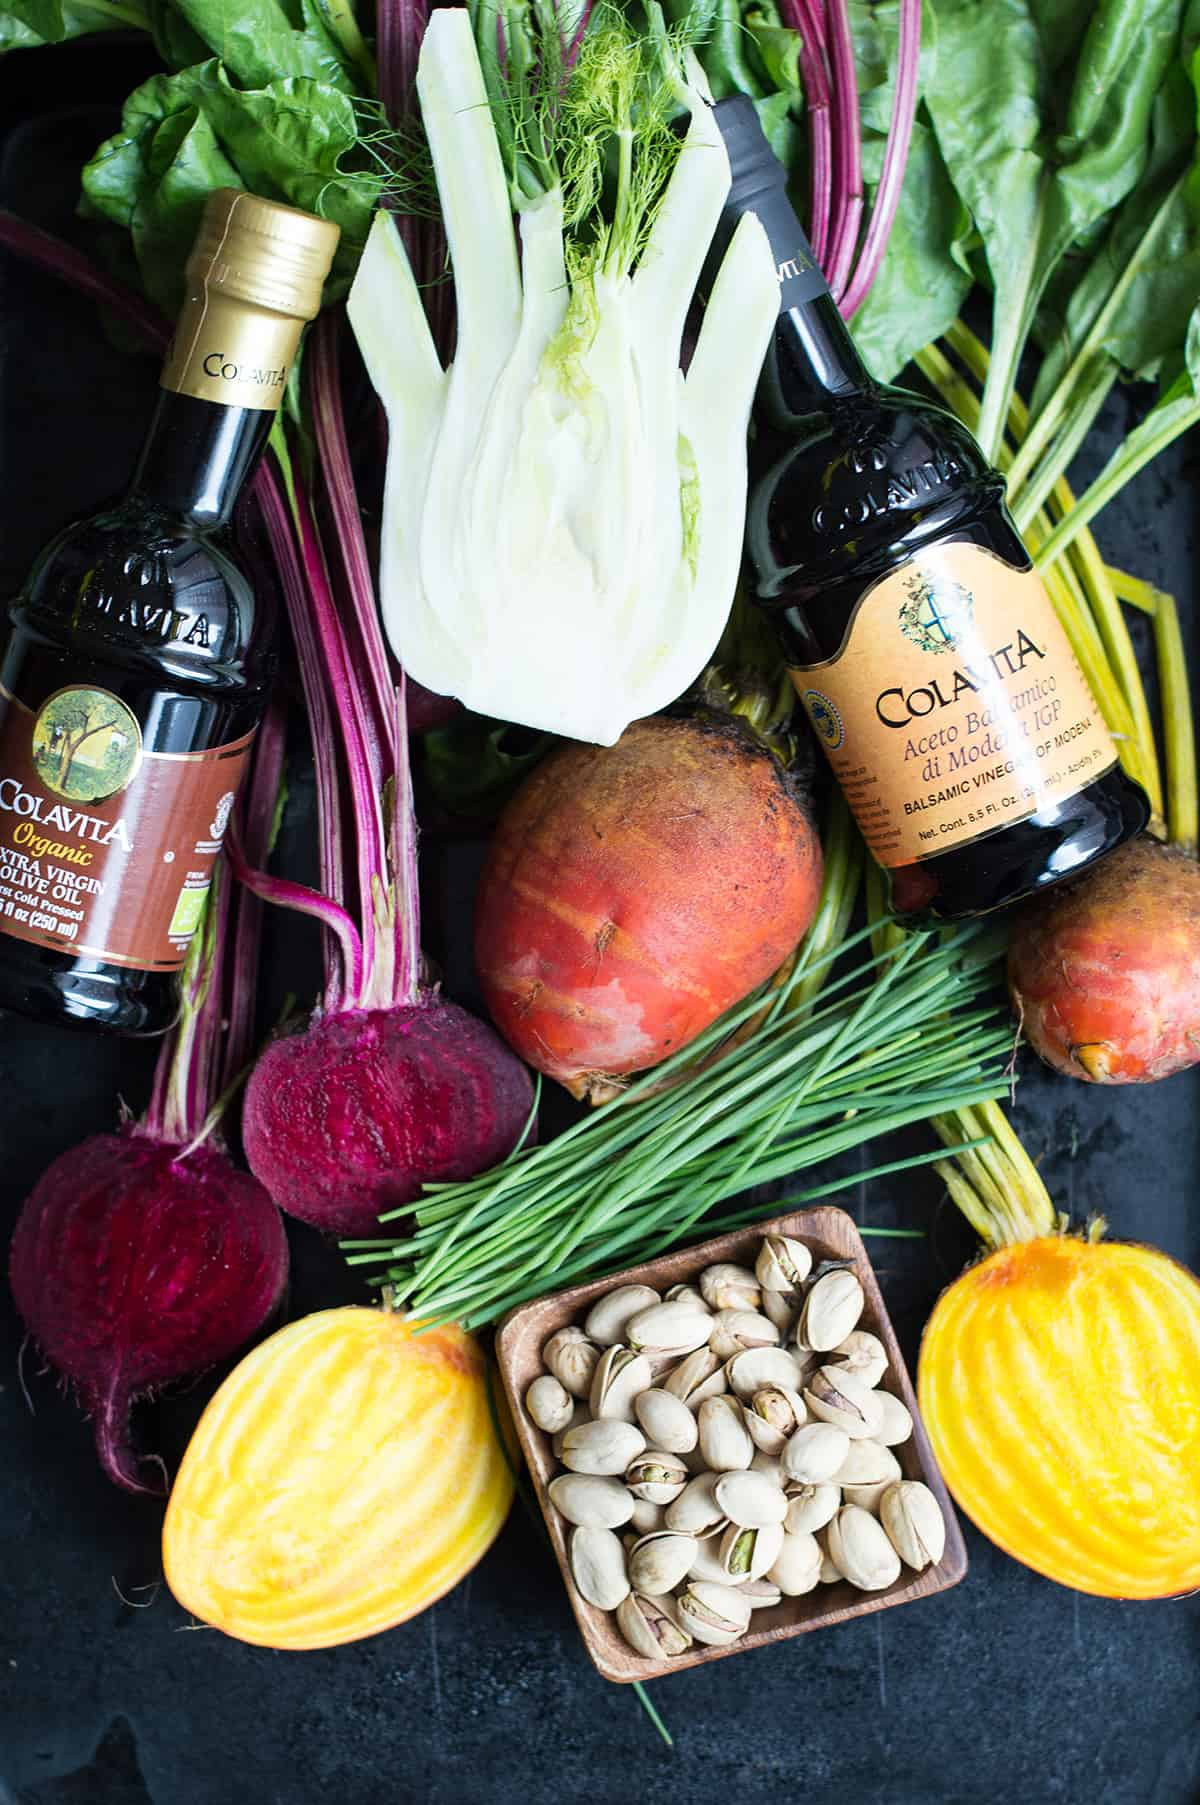 roasted fennel and beet salad ingredients